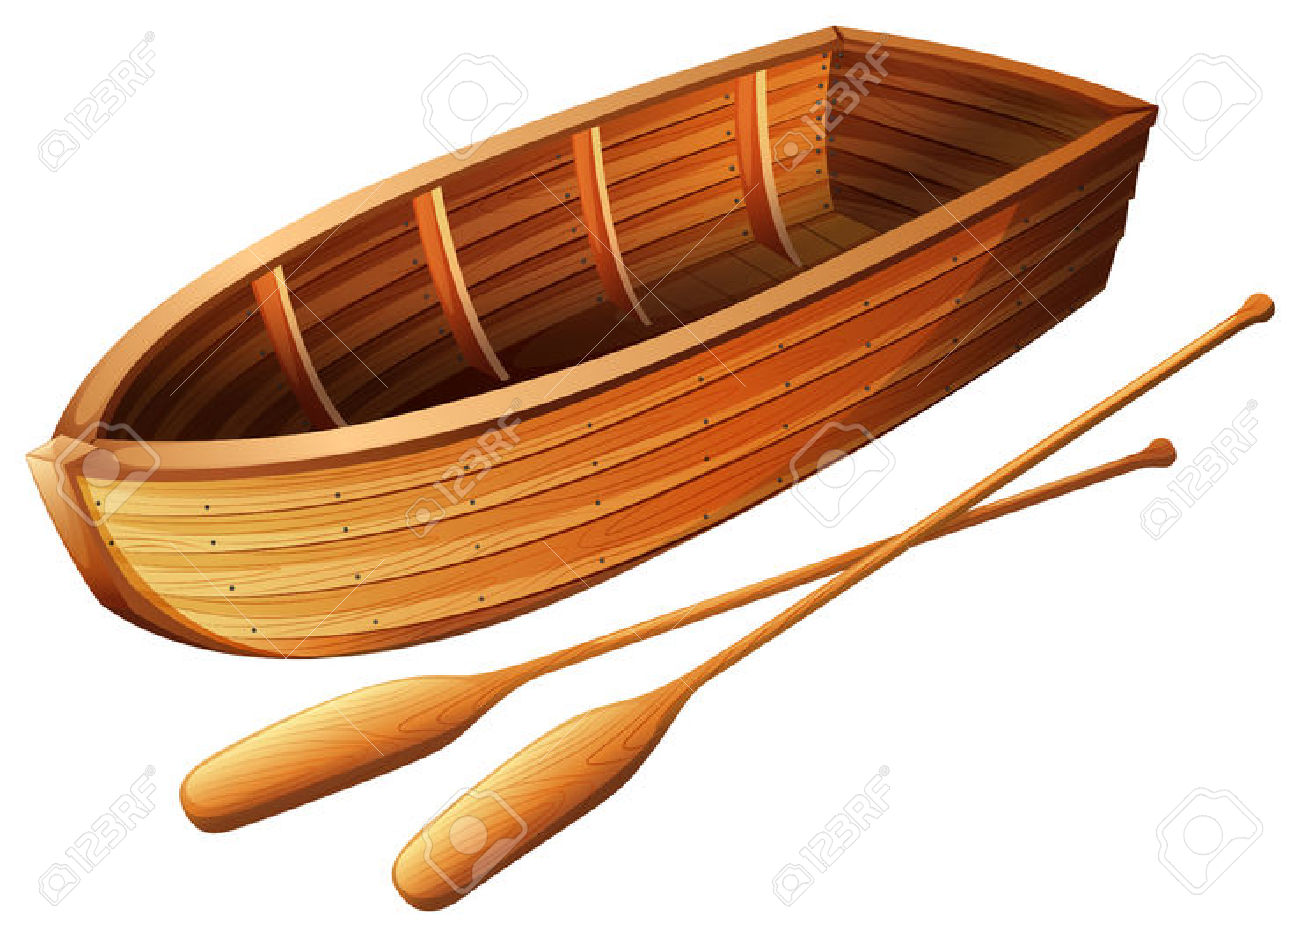 Wooden Boat On White Illustration Royalty Free Cliparts, Vectors.